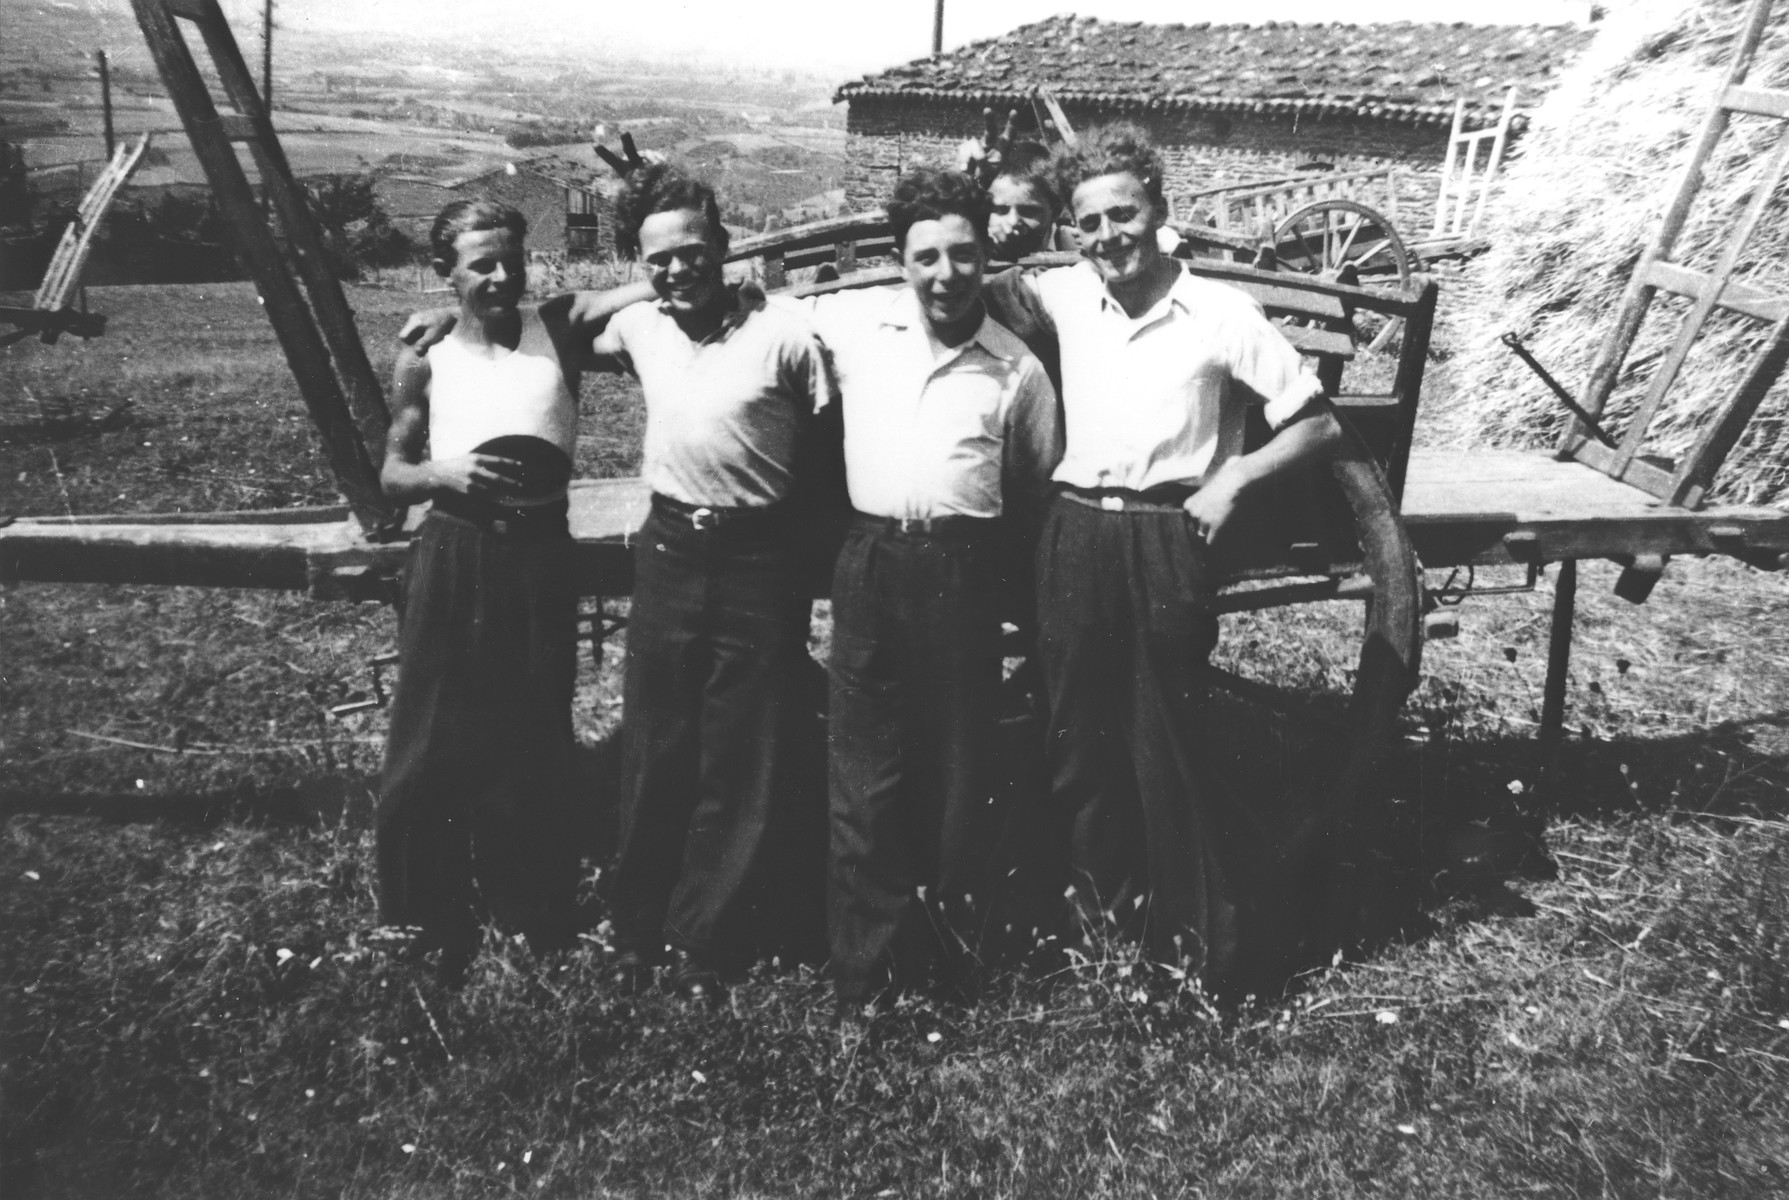 Jewish youth in hiding pose with other agricultural workers in front of a hay wagon on a farm in Treves.  Among those pictured is Julien Bluschtein (second from the right) and Herbert Karliner (third from the right).